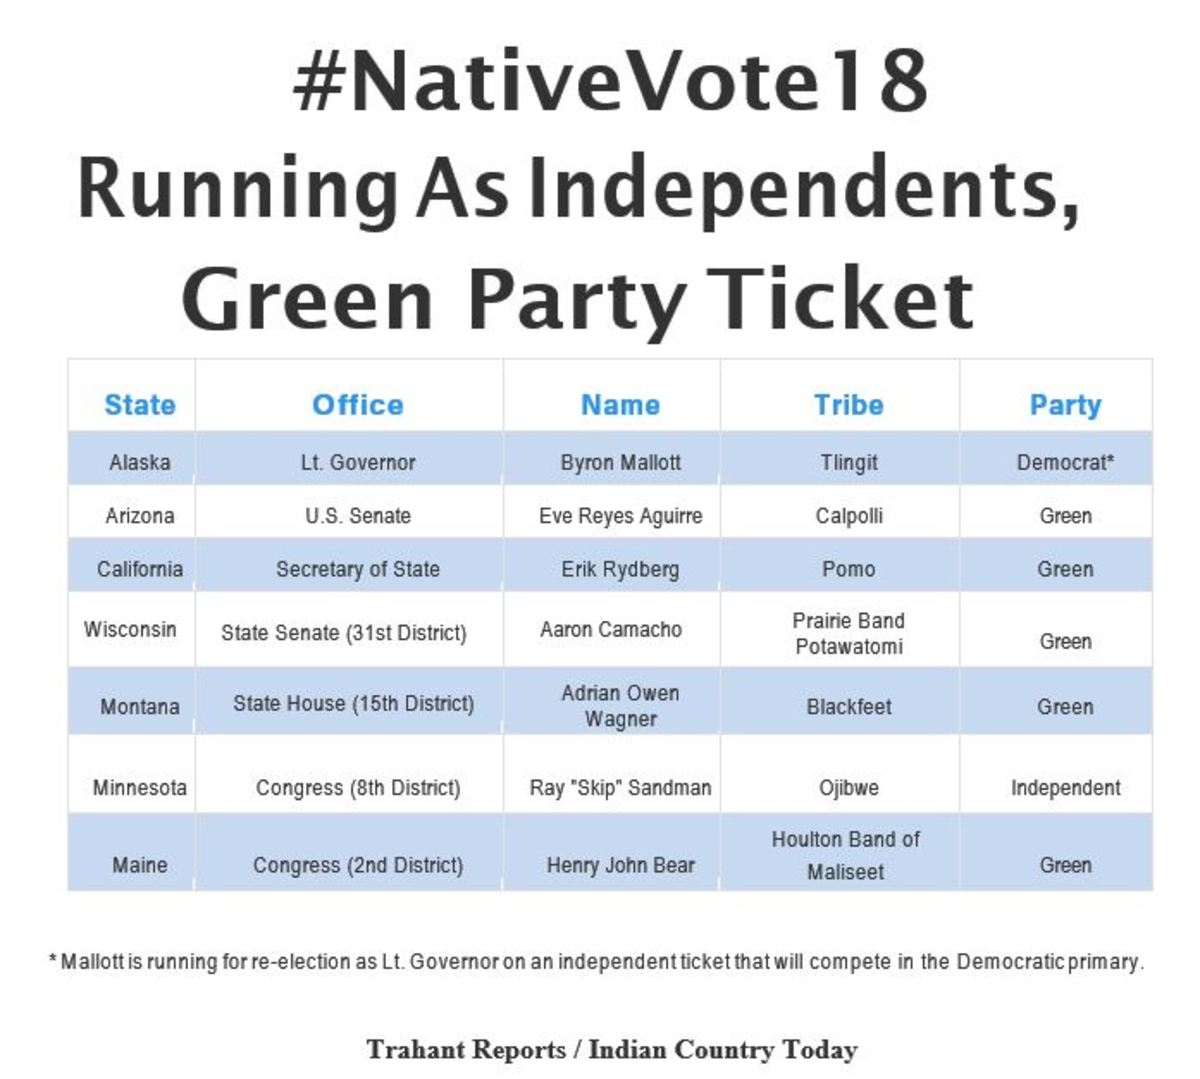 #NativeVote18 Running As Independents, Green Party Ticket.